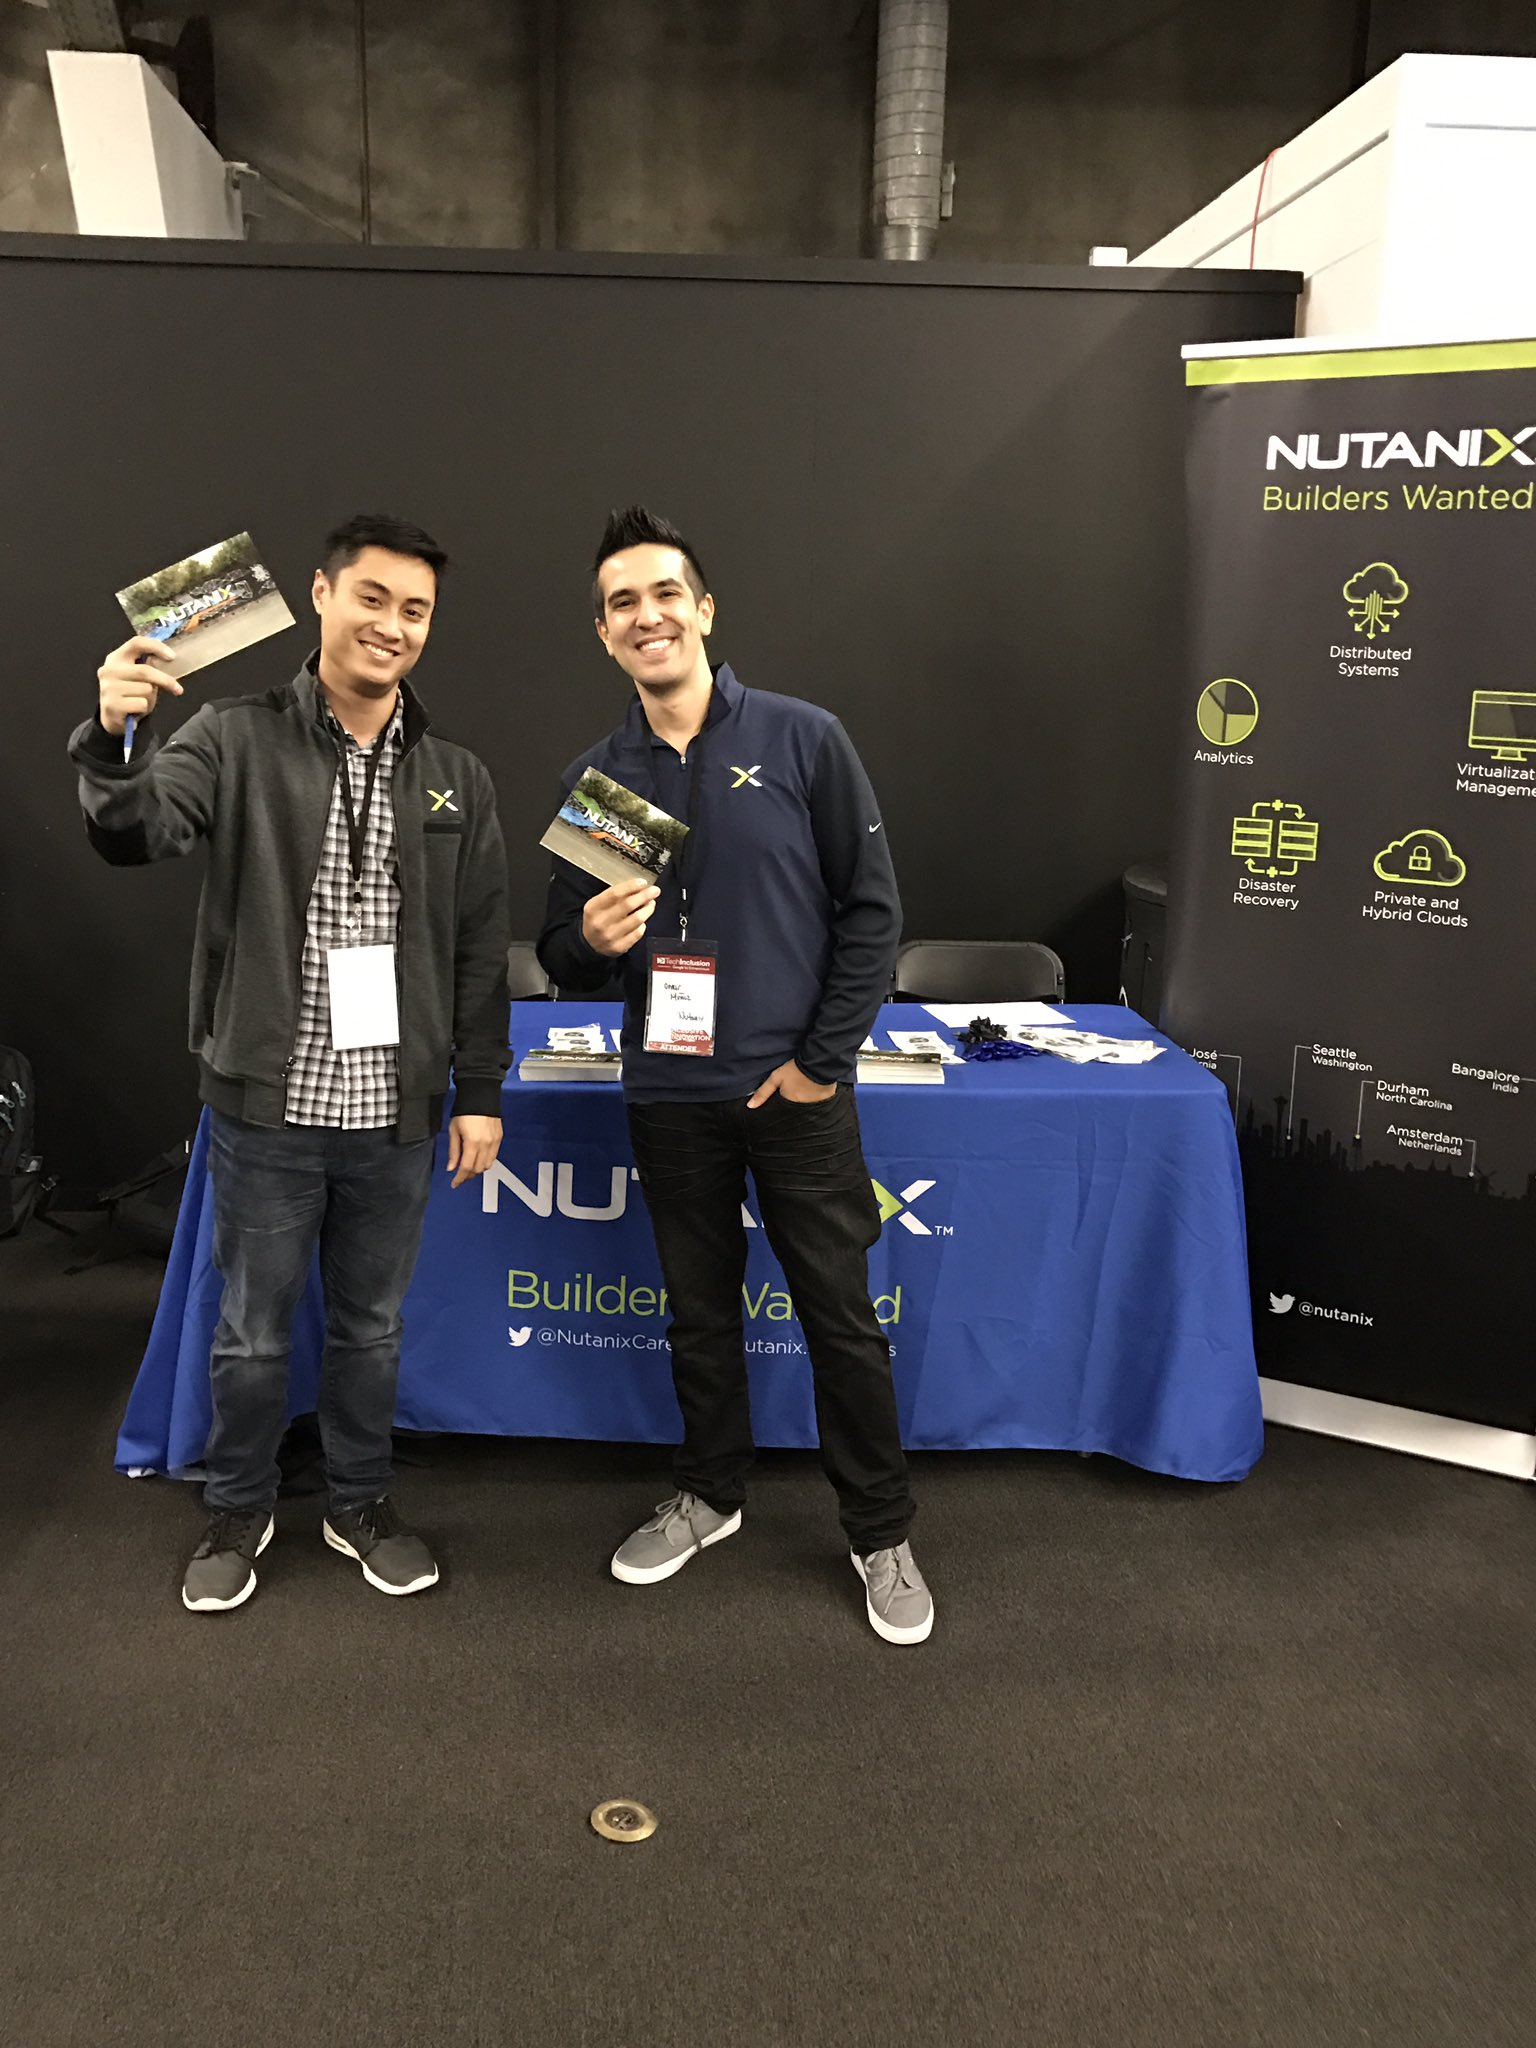 Come chat with Charlie & Omar today at the Tech Inclusion Career Fair from 11am to 3pm to learn about job opps @nutanix #TechInclusion16 https://t.co/EFU8qb4F5O